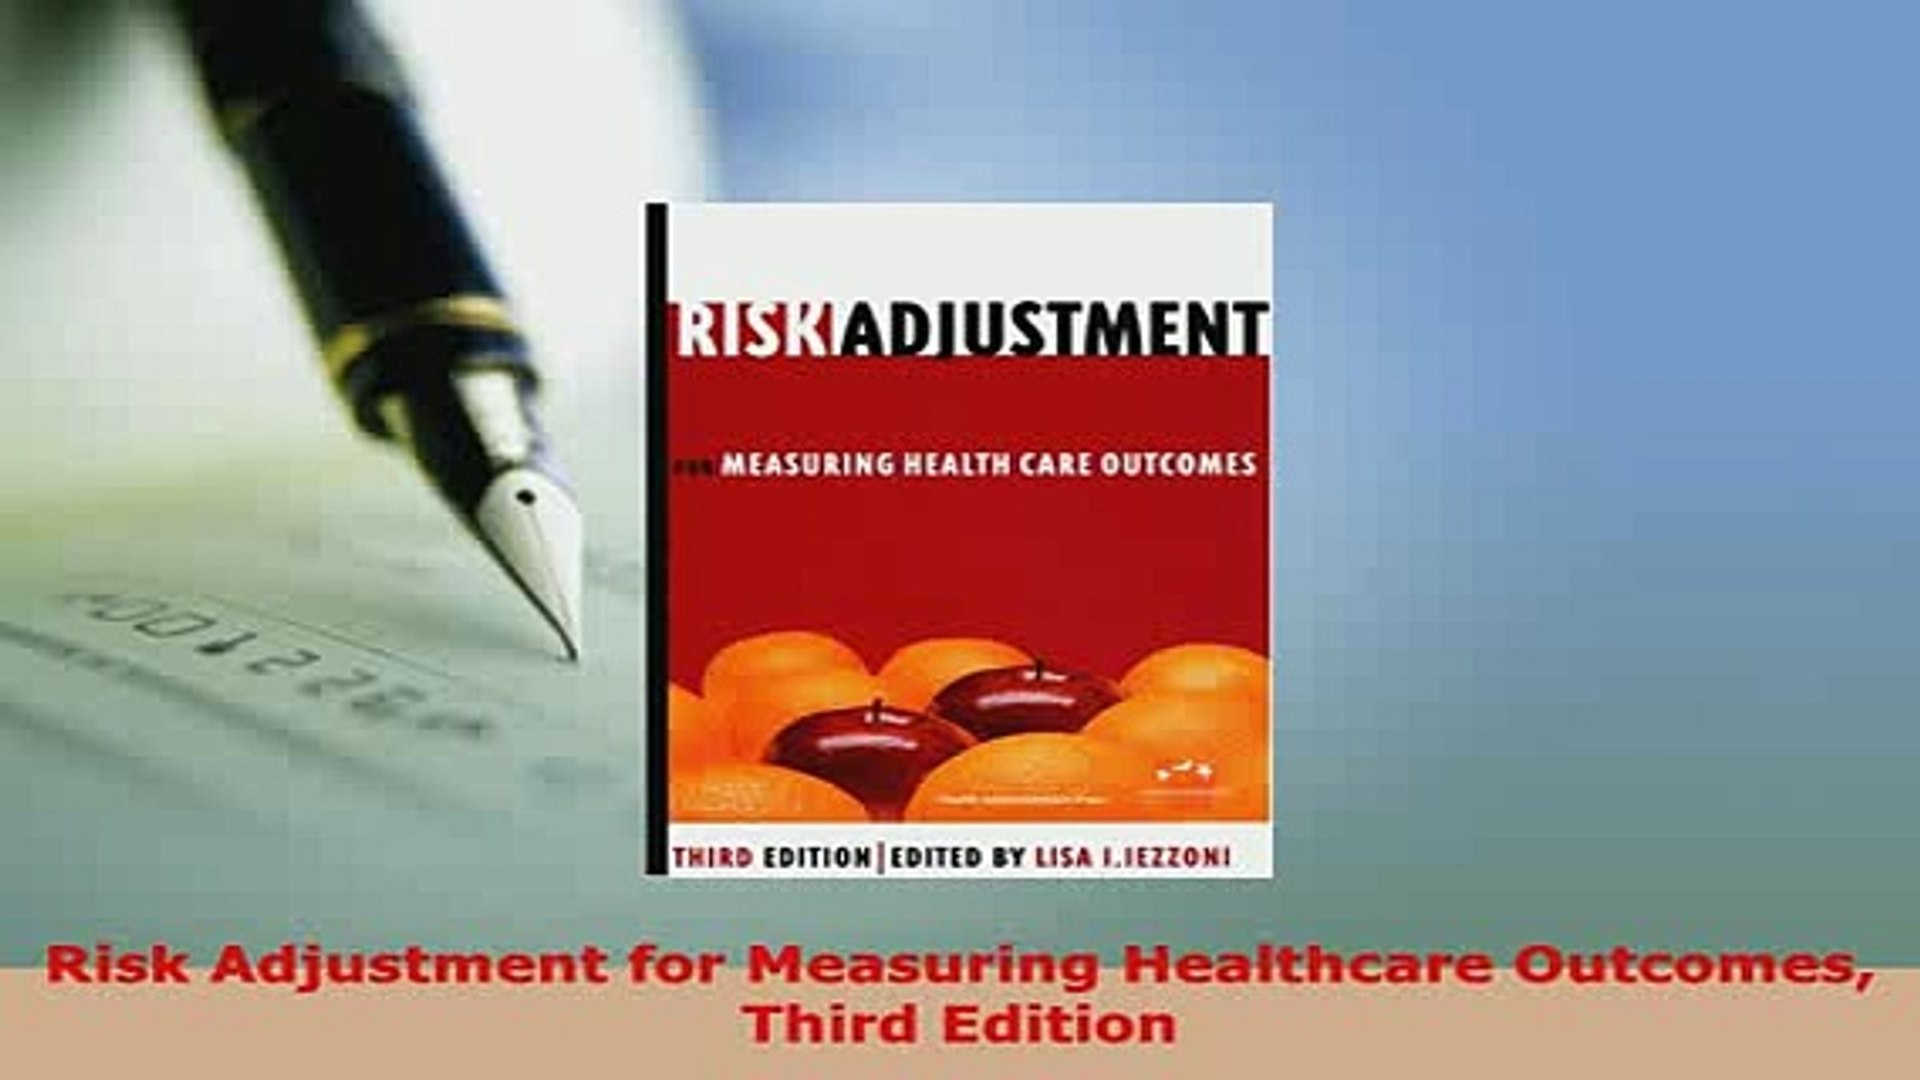 Third Edition Risk Adjustment For Measuring Healthcare Outcomes